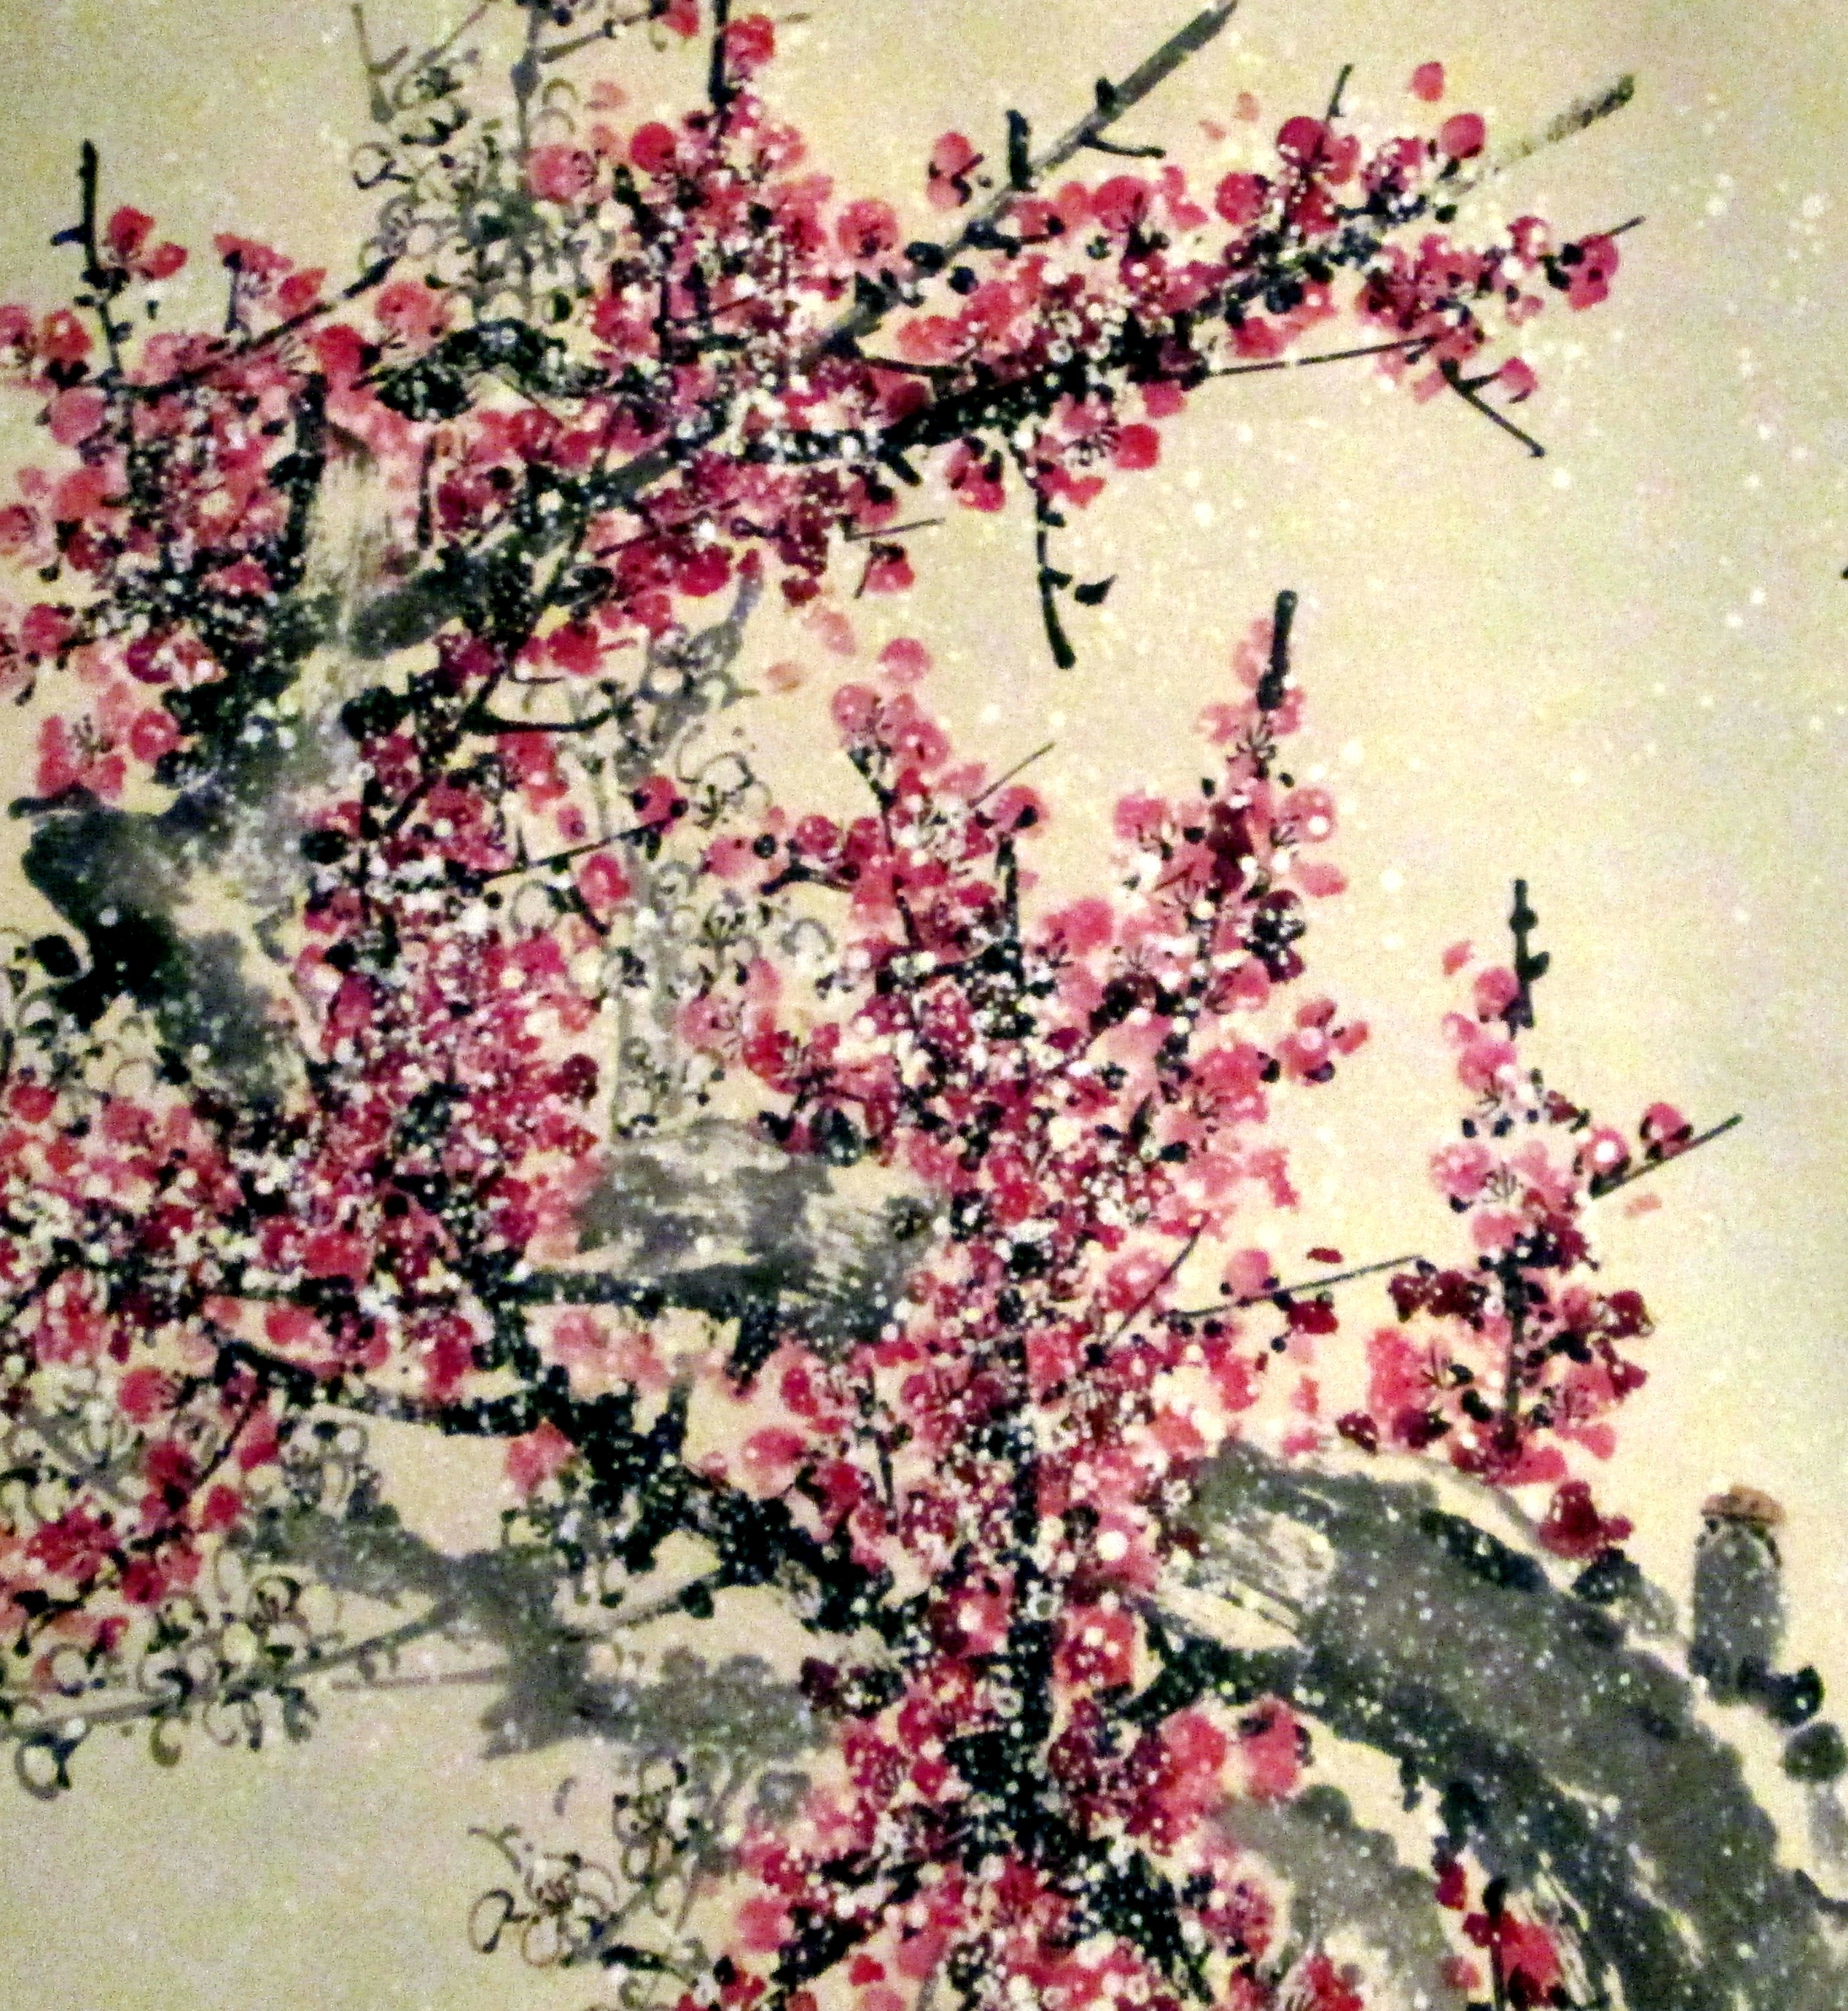 Snow on Plum Blossoms